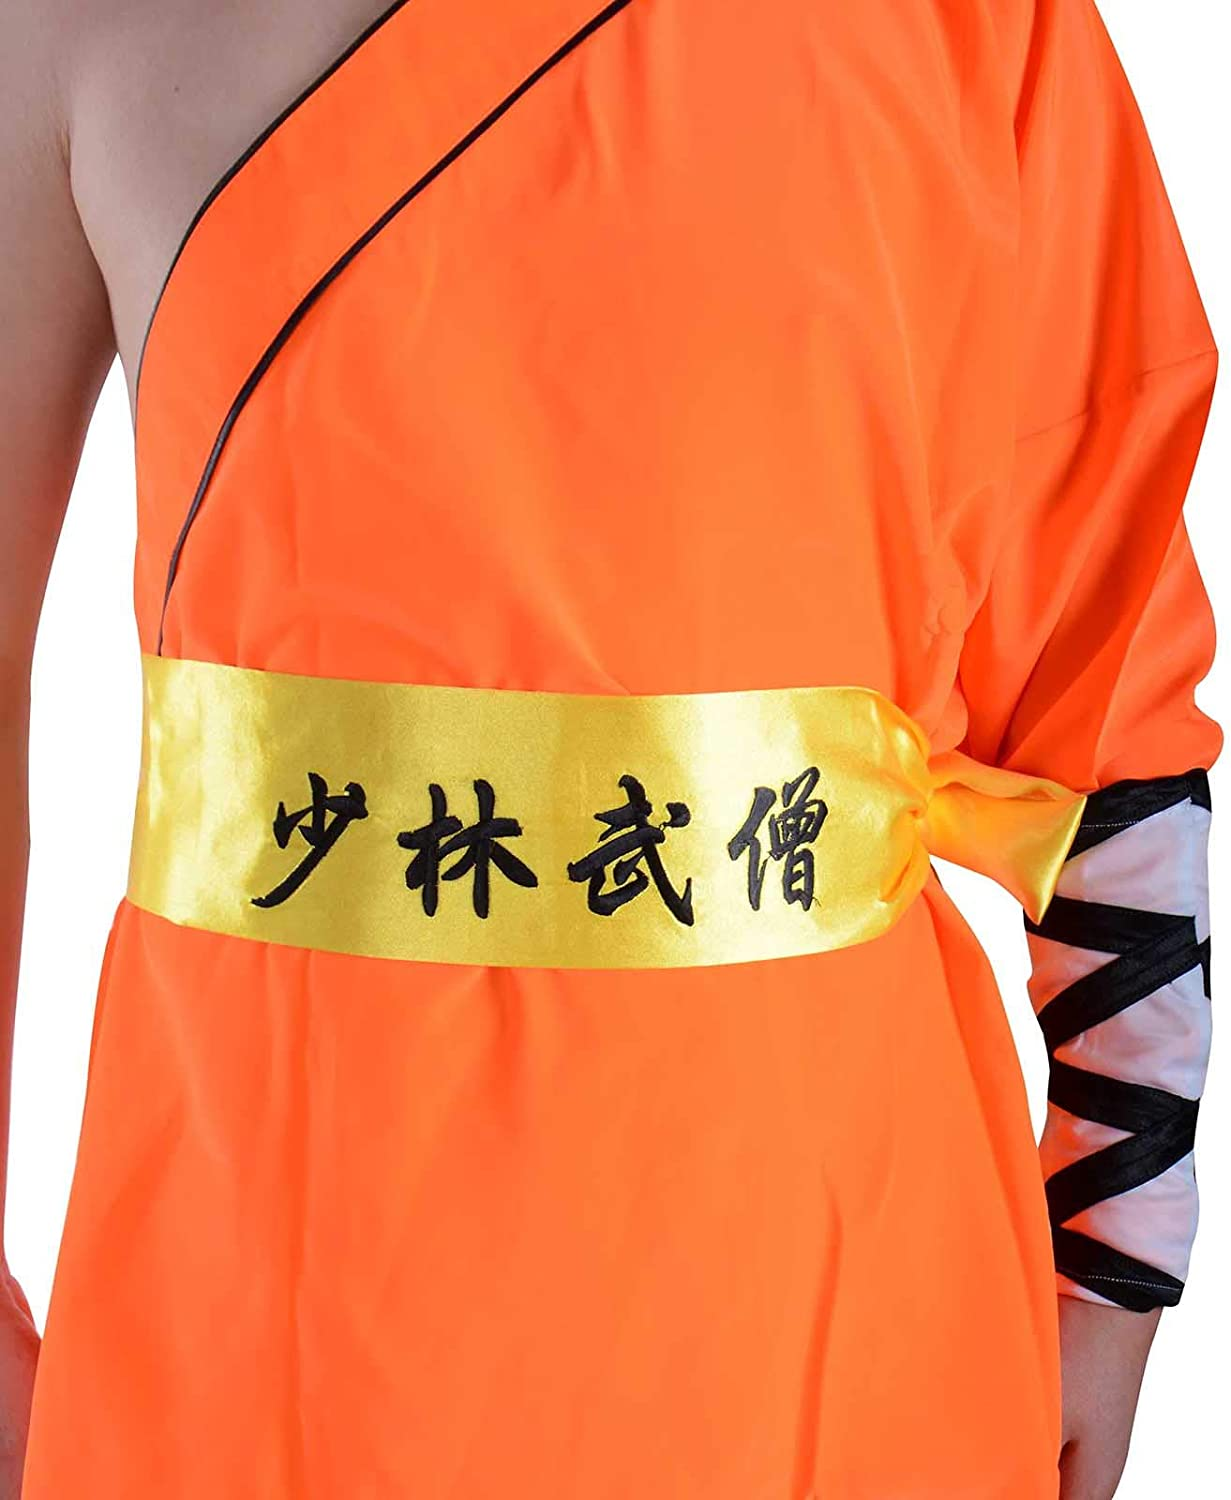 Chinese Traditional Shaolin Temple Warrior Monks Robe Martial Arts Kung Fu Uniform Training Suit Baggy Pants Belt